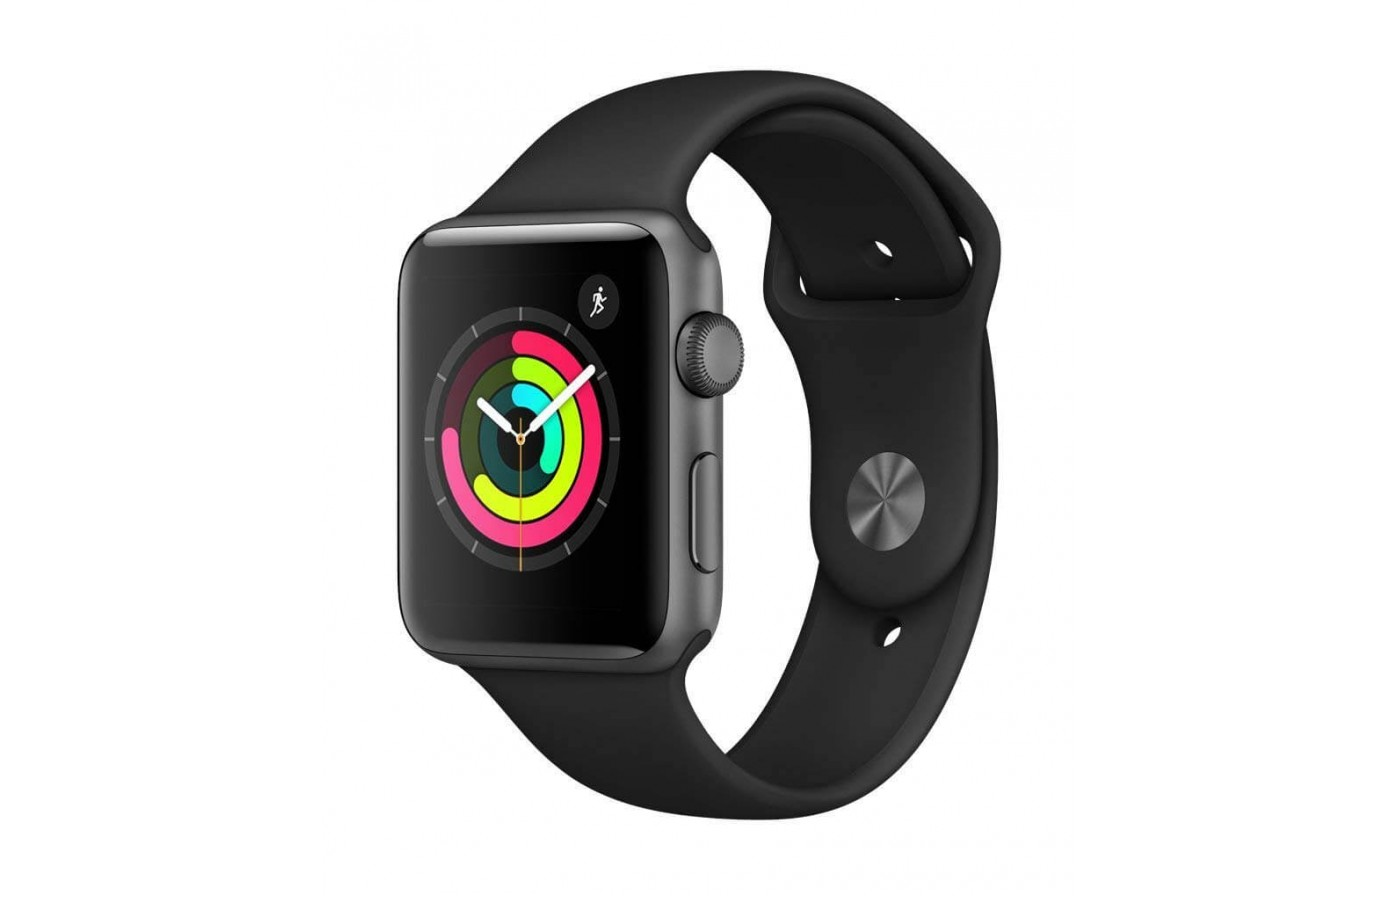 Apple Watch Series 3 side